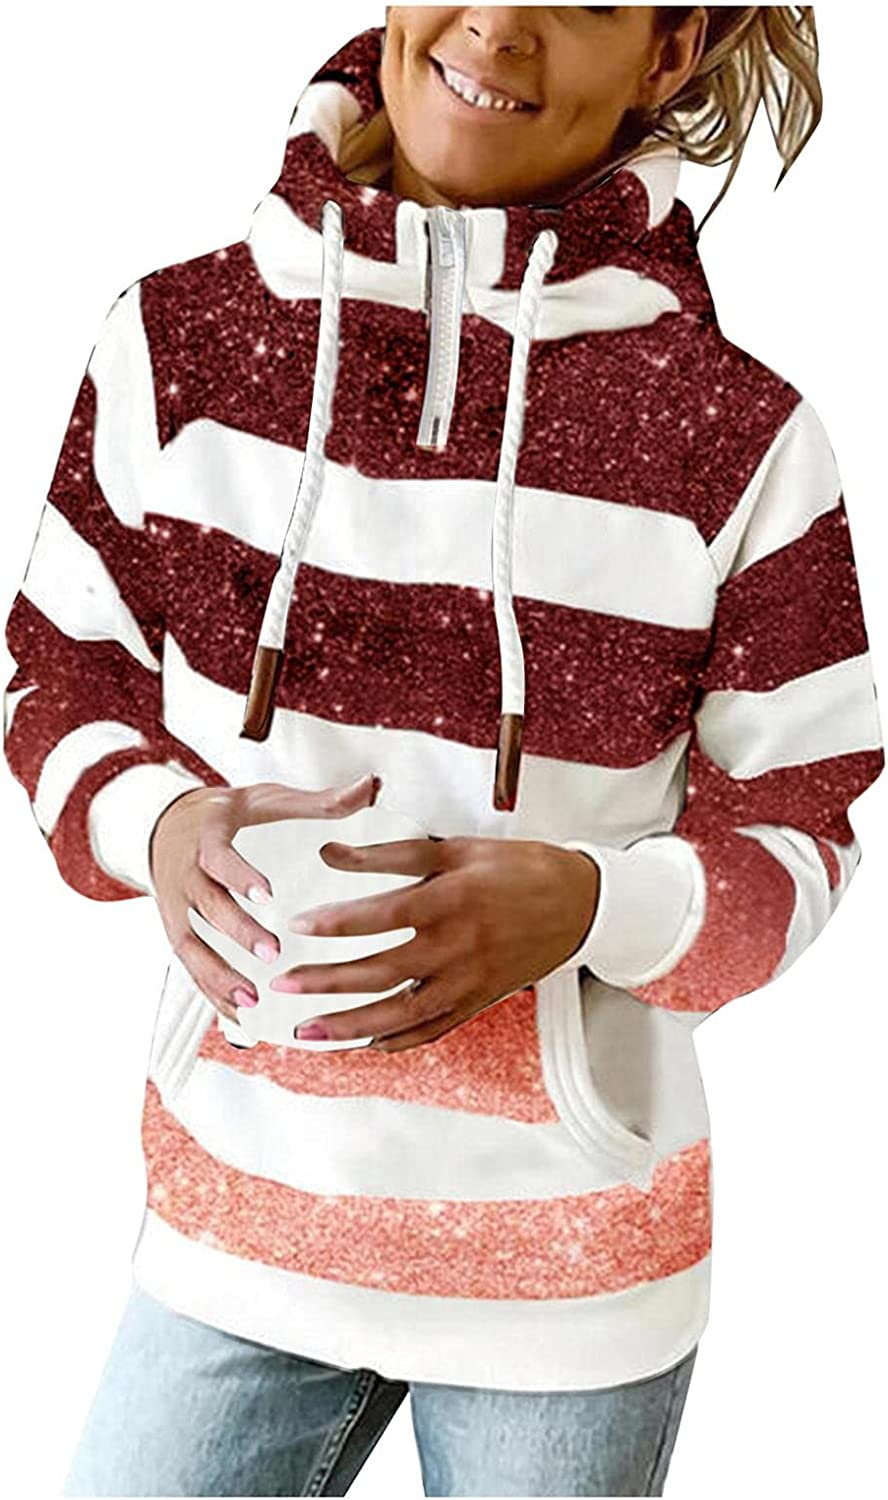 Gibobby Hoodies for Women Pullover Winter Sweatshirts Striped Long Sleeve Striped Printed Tie Dye Oversized Drawstring Hooded